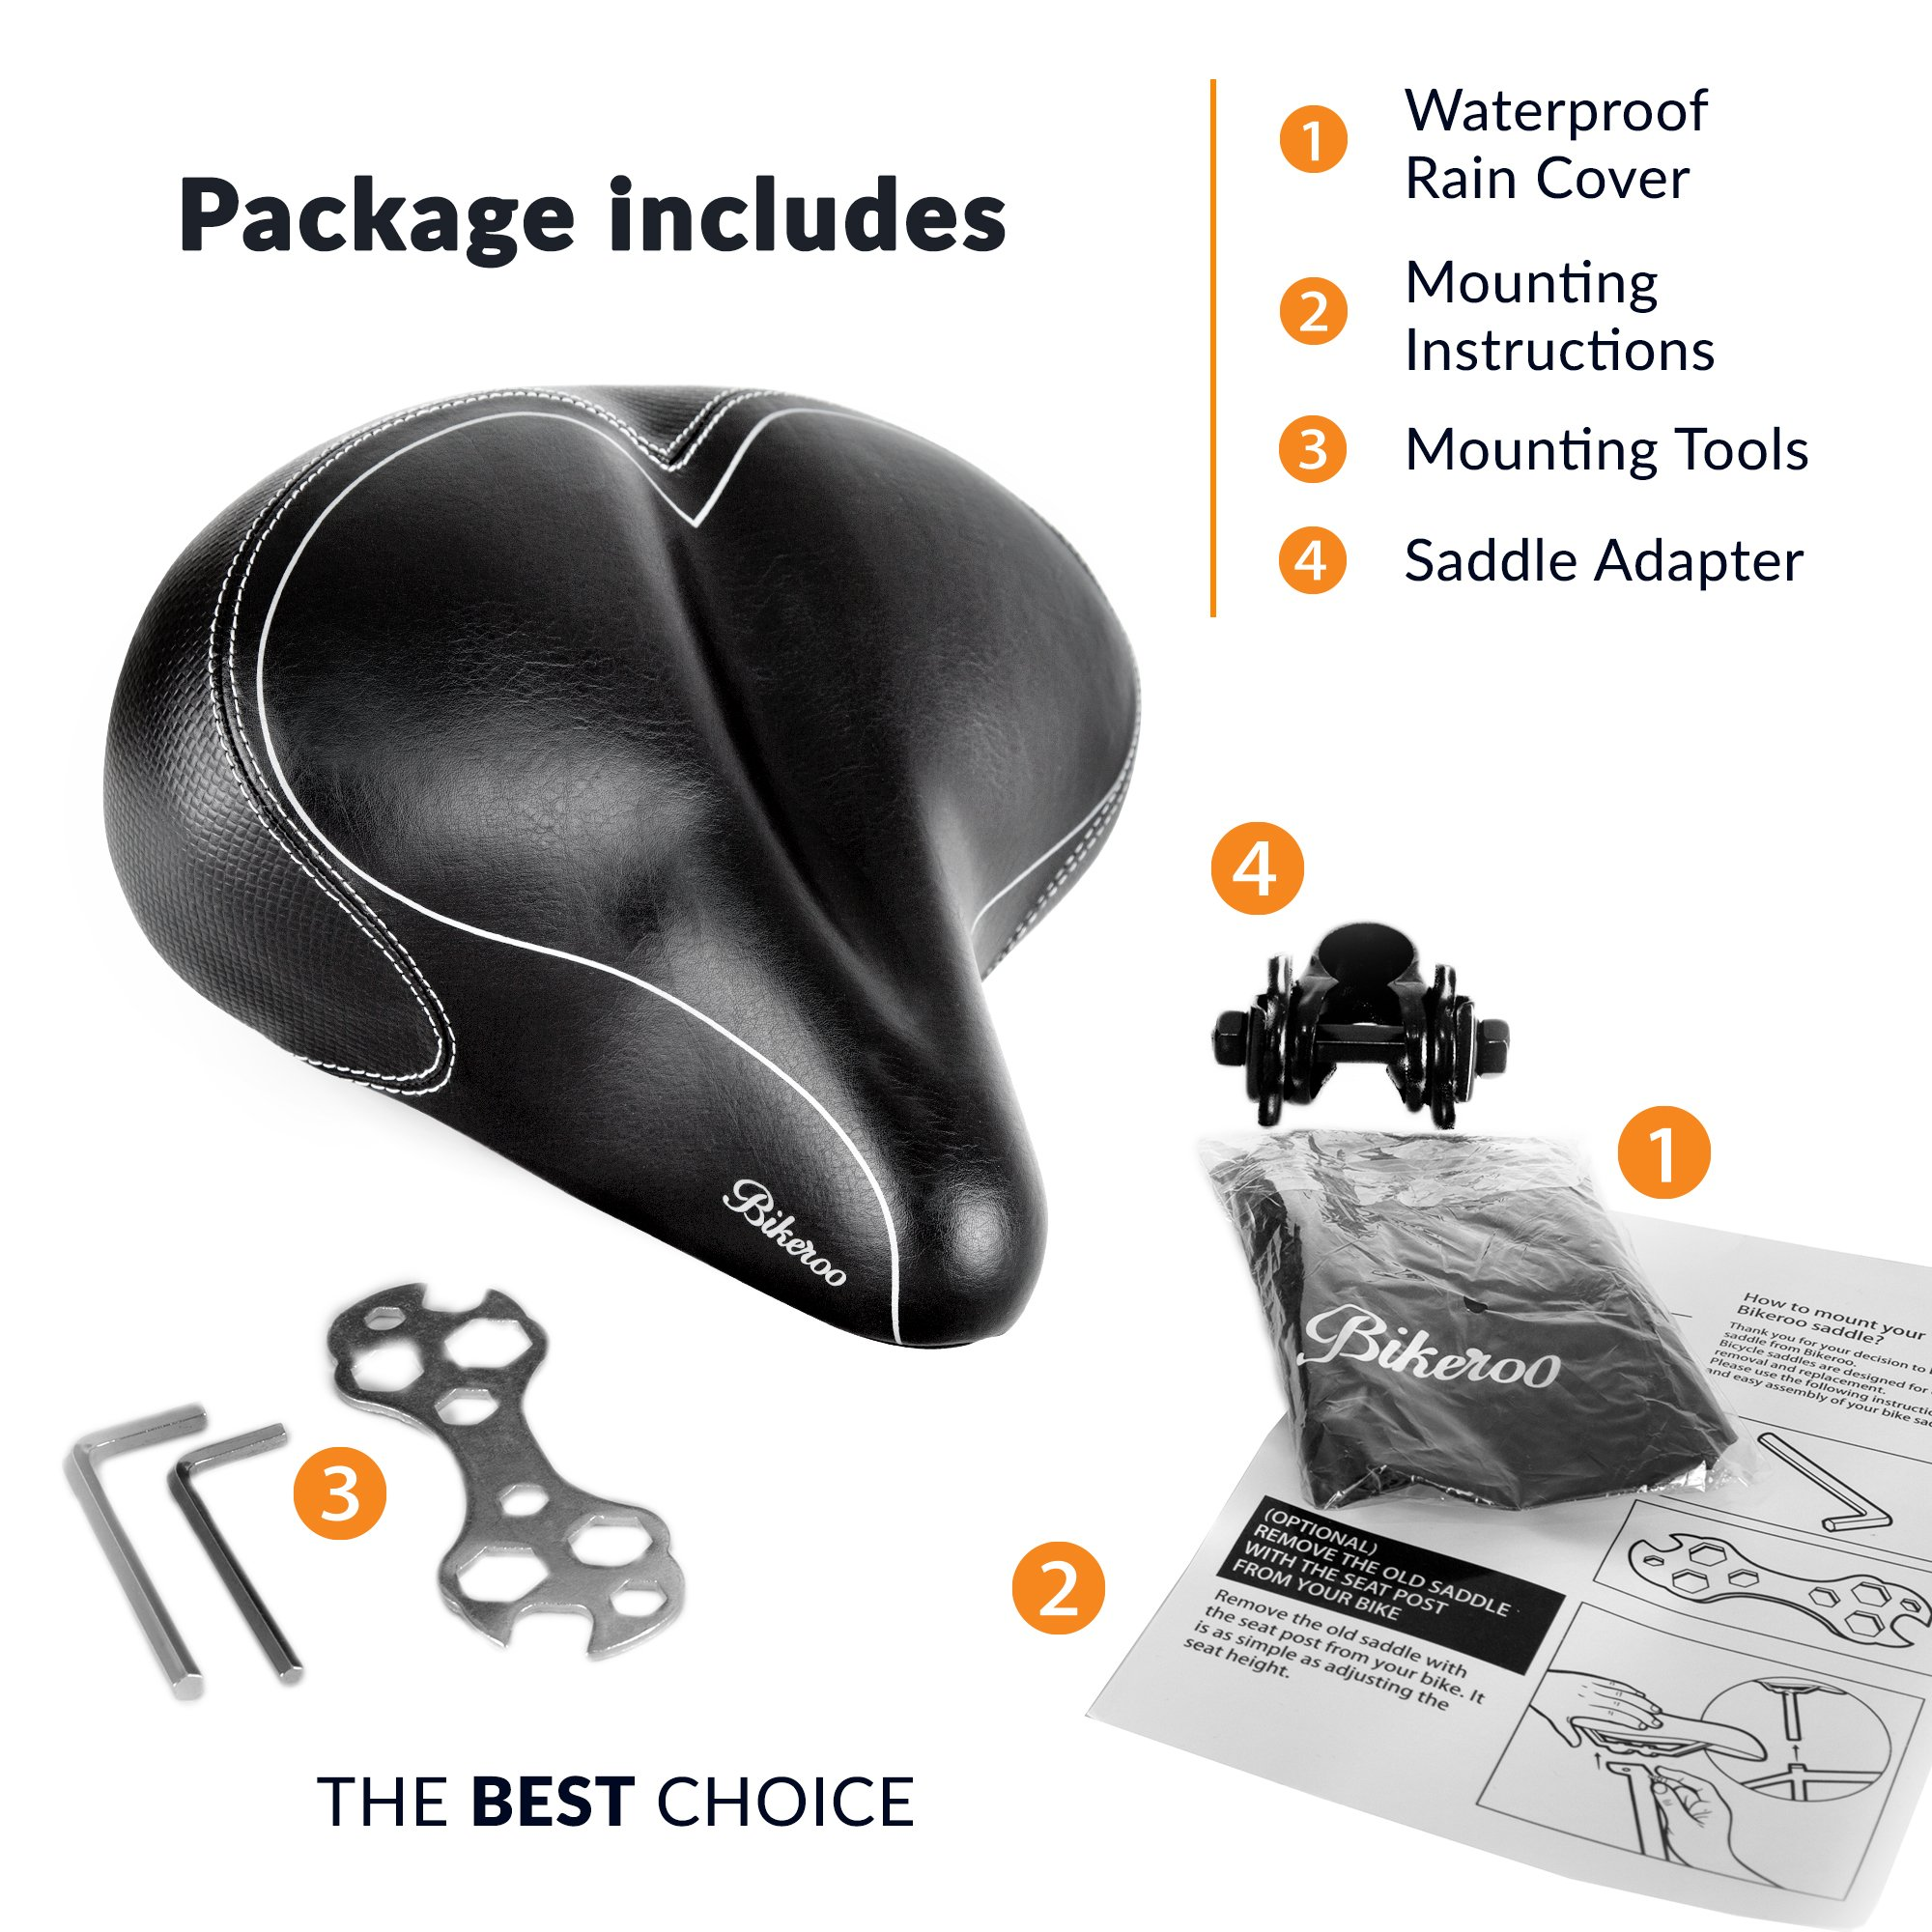 Bikeroo Oversized Comfort Bike Seat Most Comfortable Replacement Bicycle Saddle - Universal Fit for Exercise Bike and Outdoor Bikes - Wide Soft Padded Bike Saddle for Women and Men by Bikeroo (Image #6)